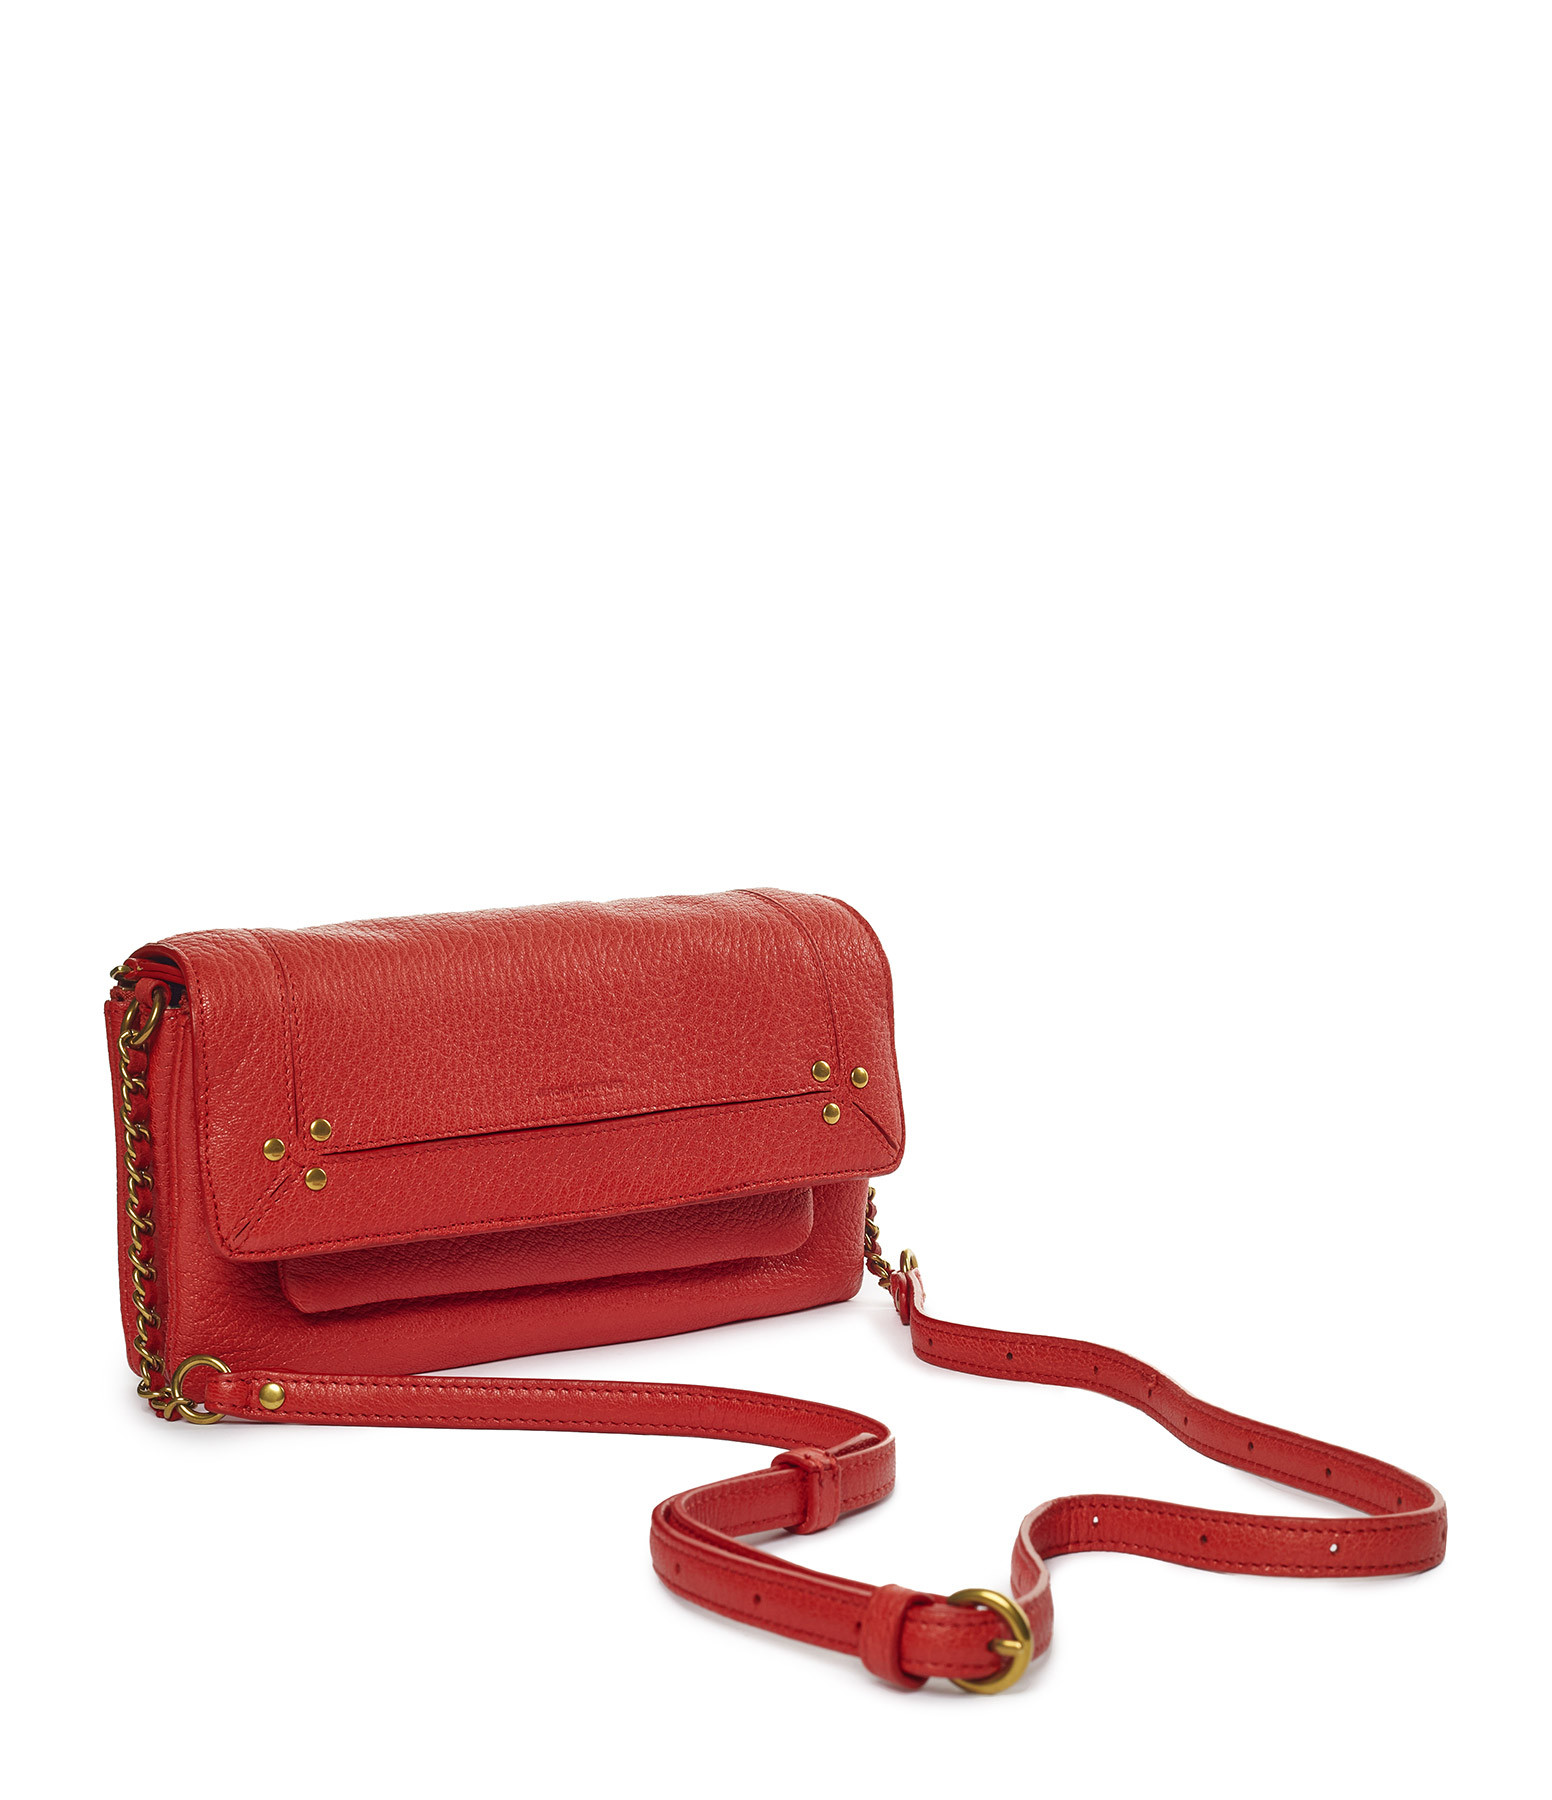 JEROME DREYFUSS - Sac Charly S Chèvre Rouge